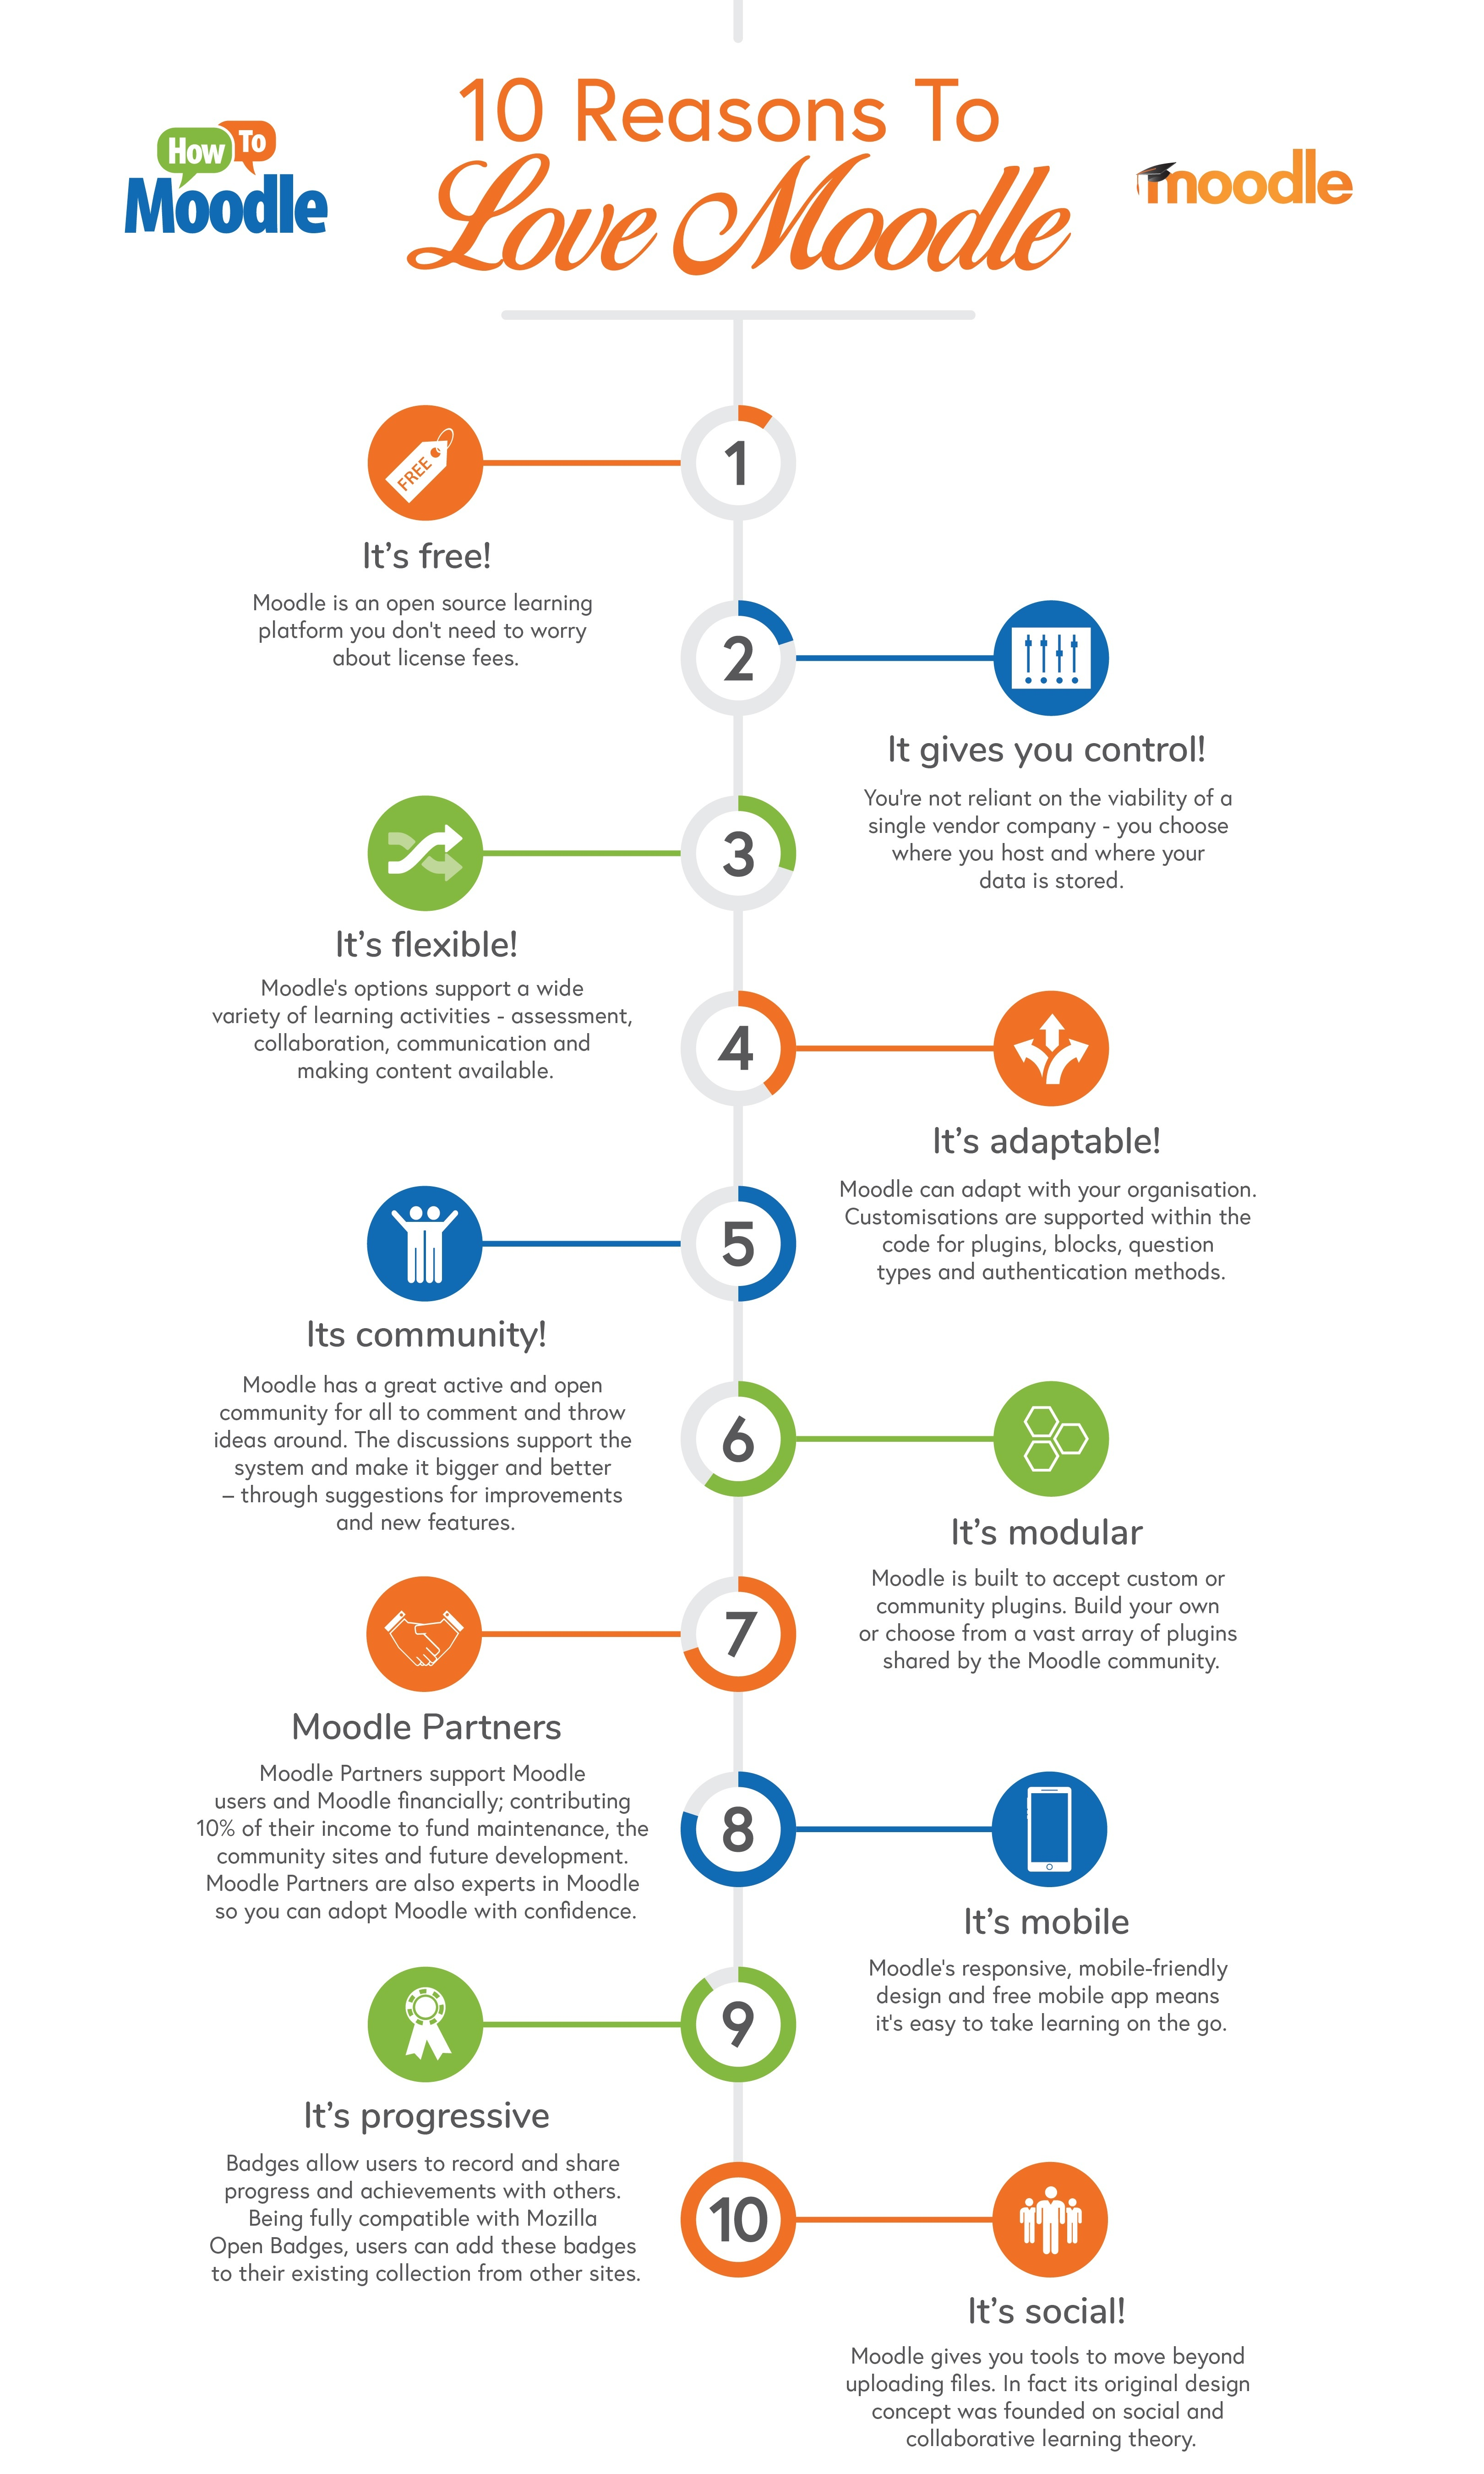 10 Reasons to love Moodle infographic-cropped.jpg